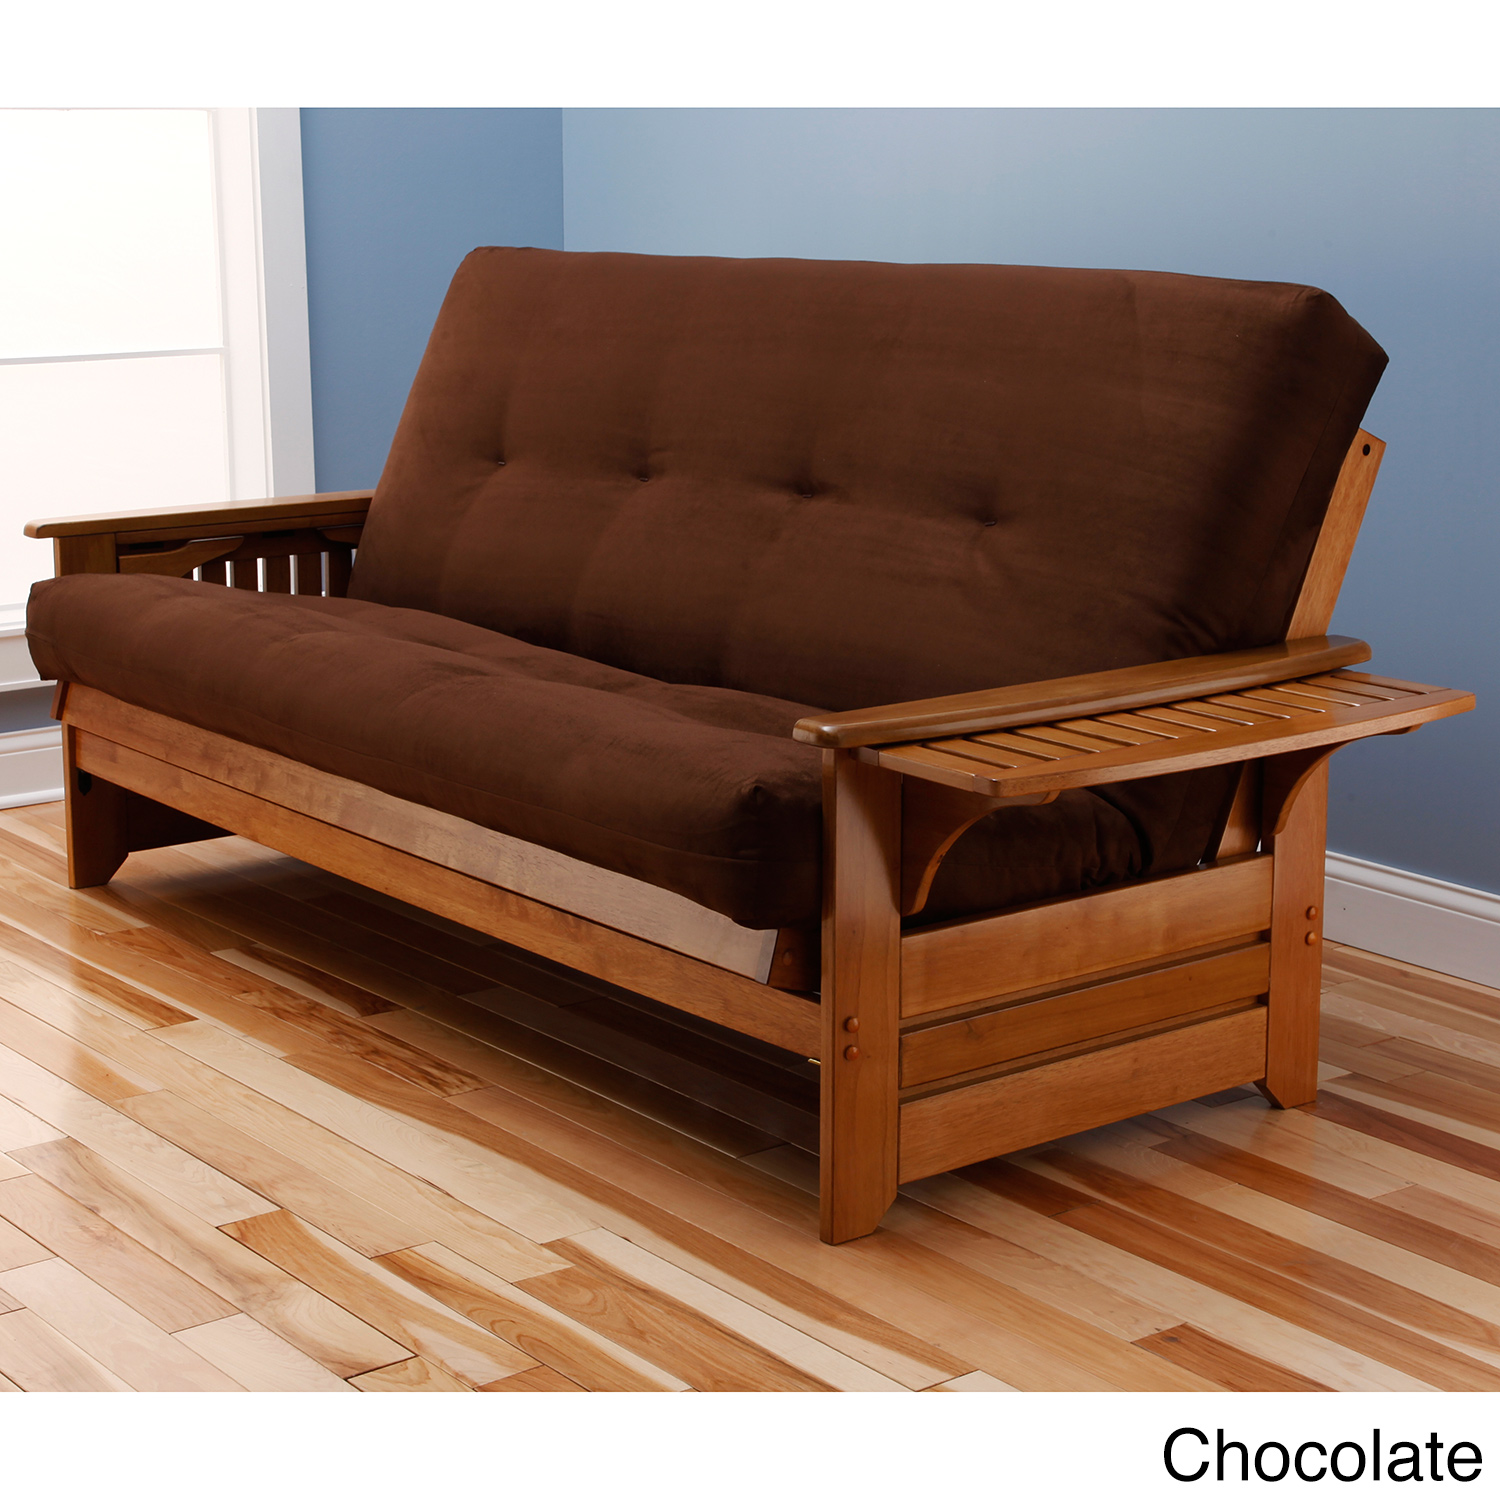 Wooden Cheap Futons In Dark Brown With Arm On Wooden Floor Matched With Blue Wall For Home Decor Ideas